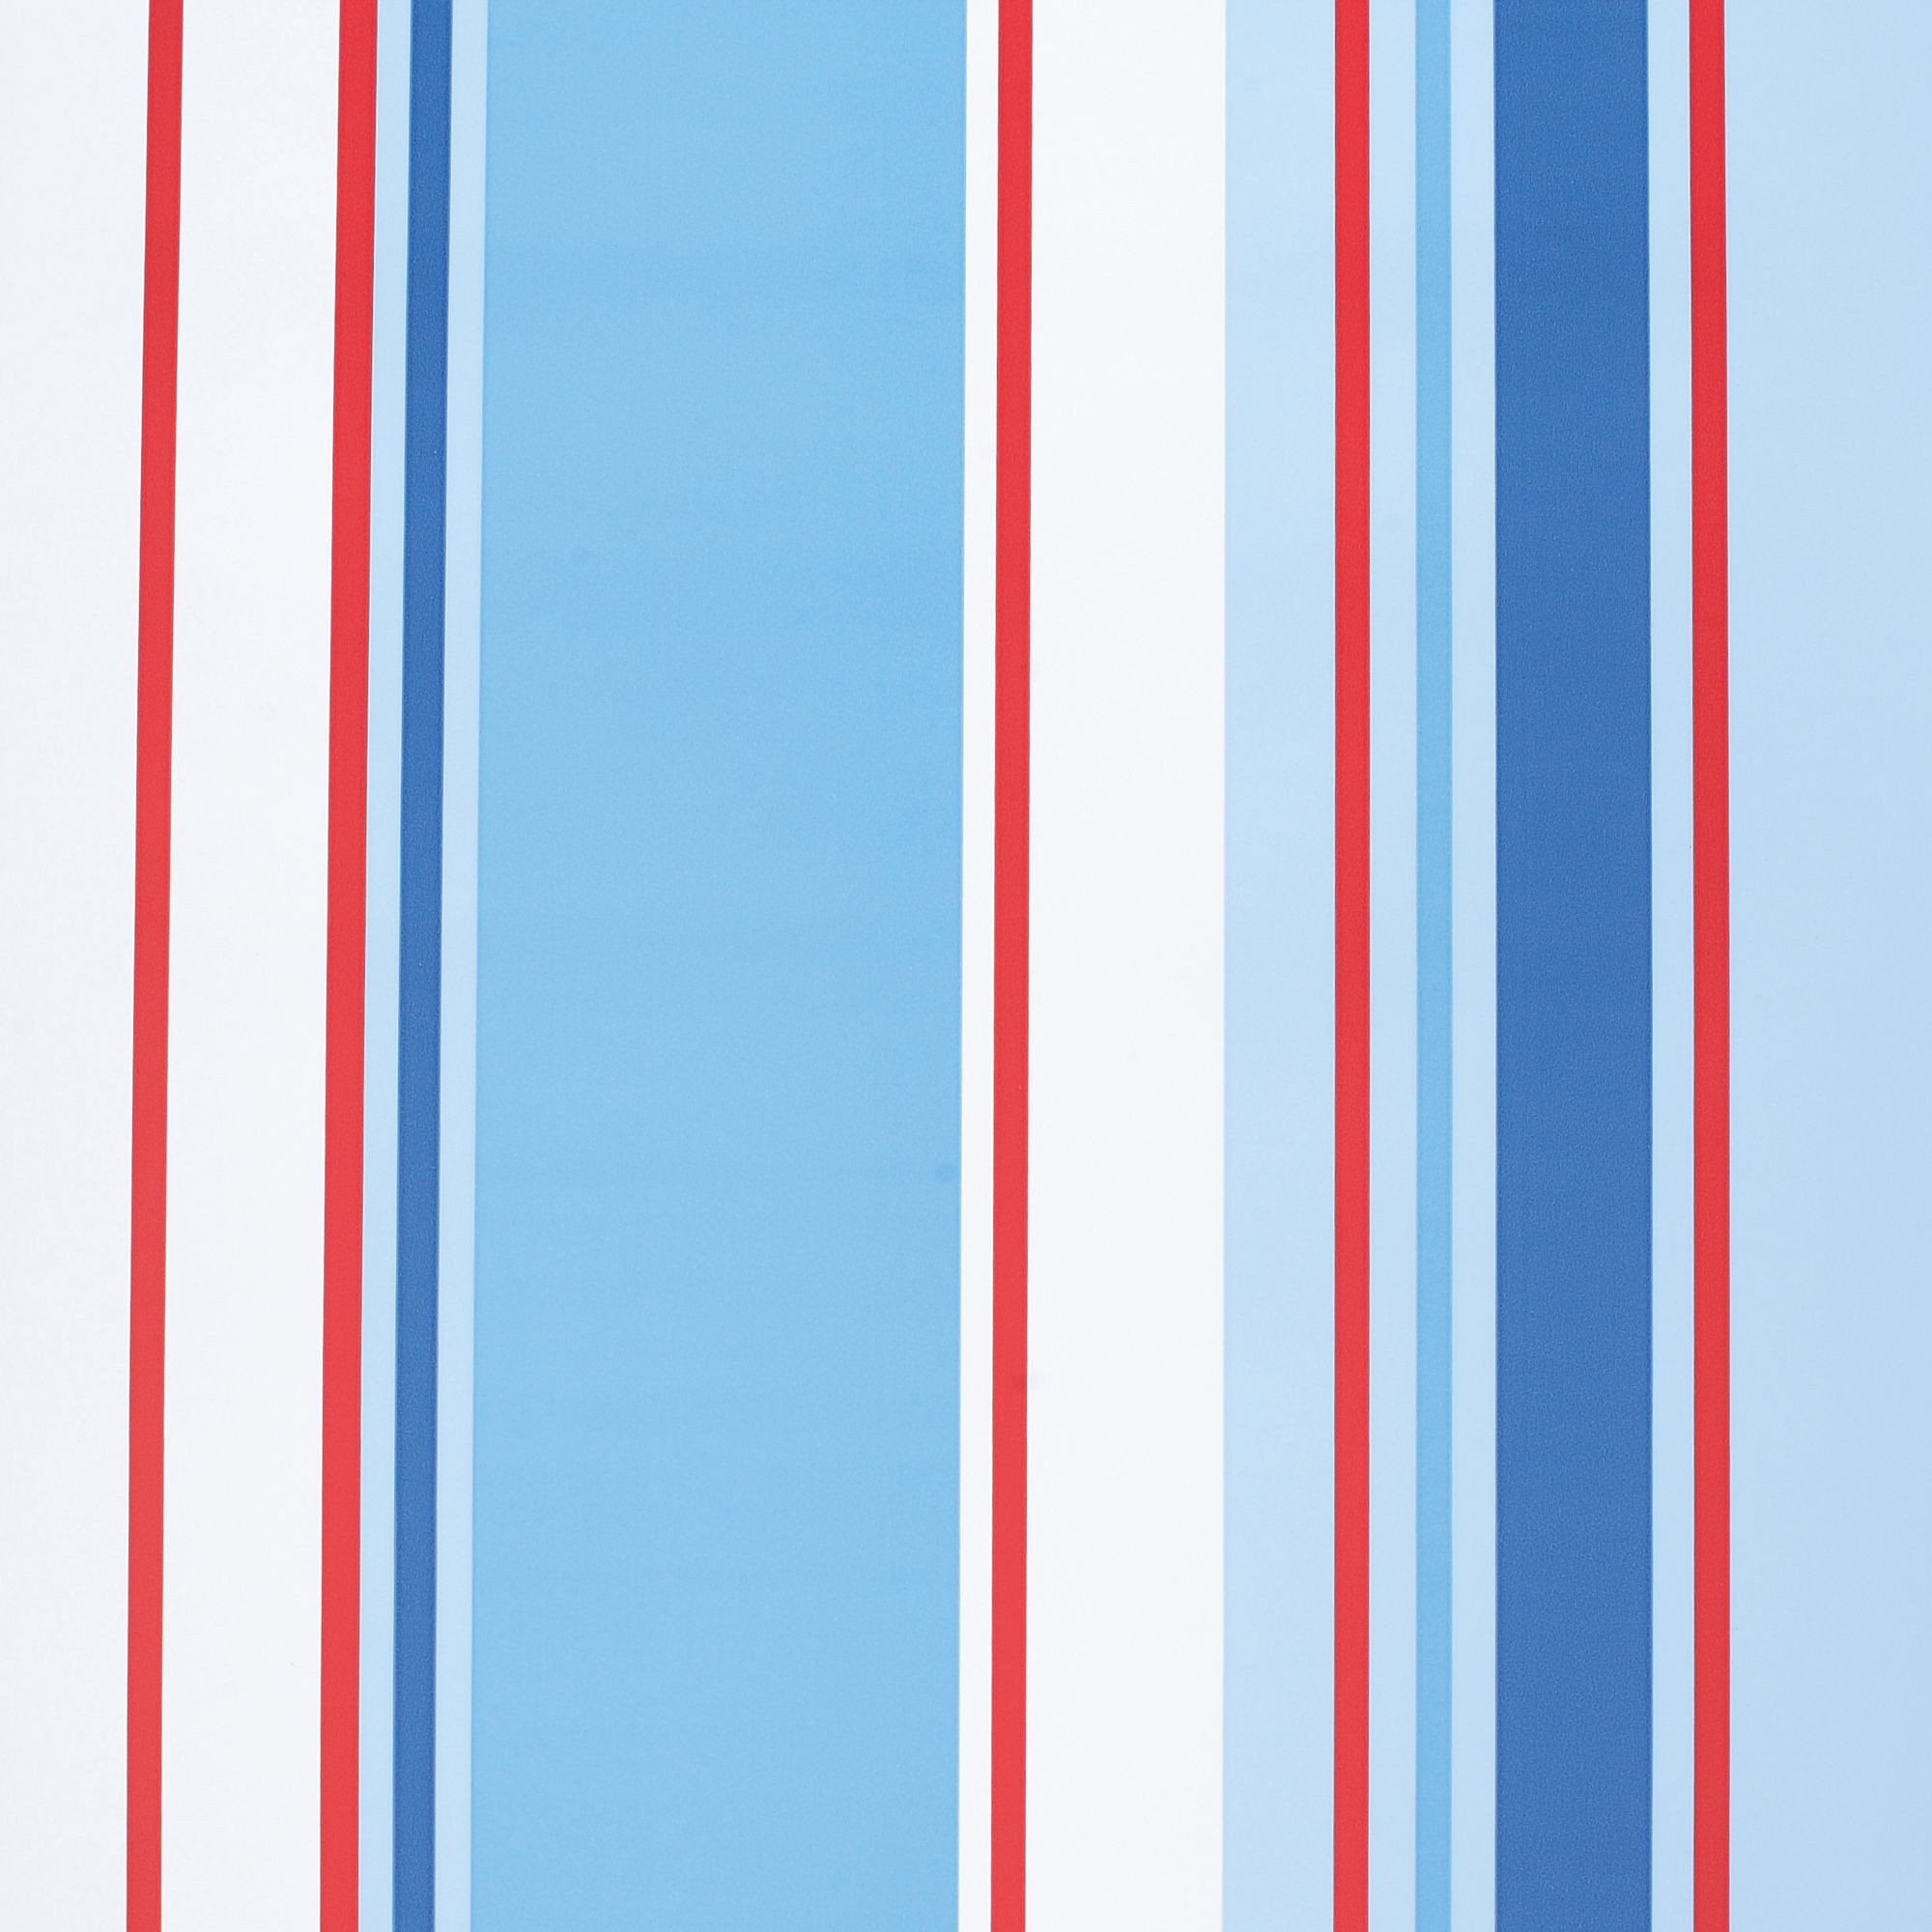 2000x2000 Holden Décor Paige Blue, Red & White Stripe Wallpaper